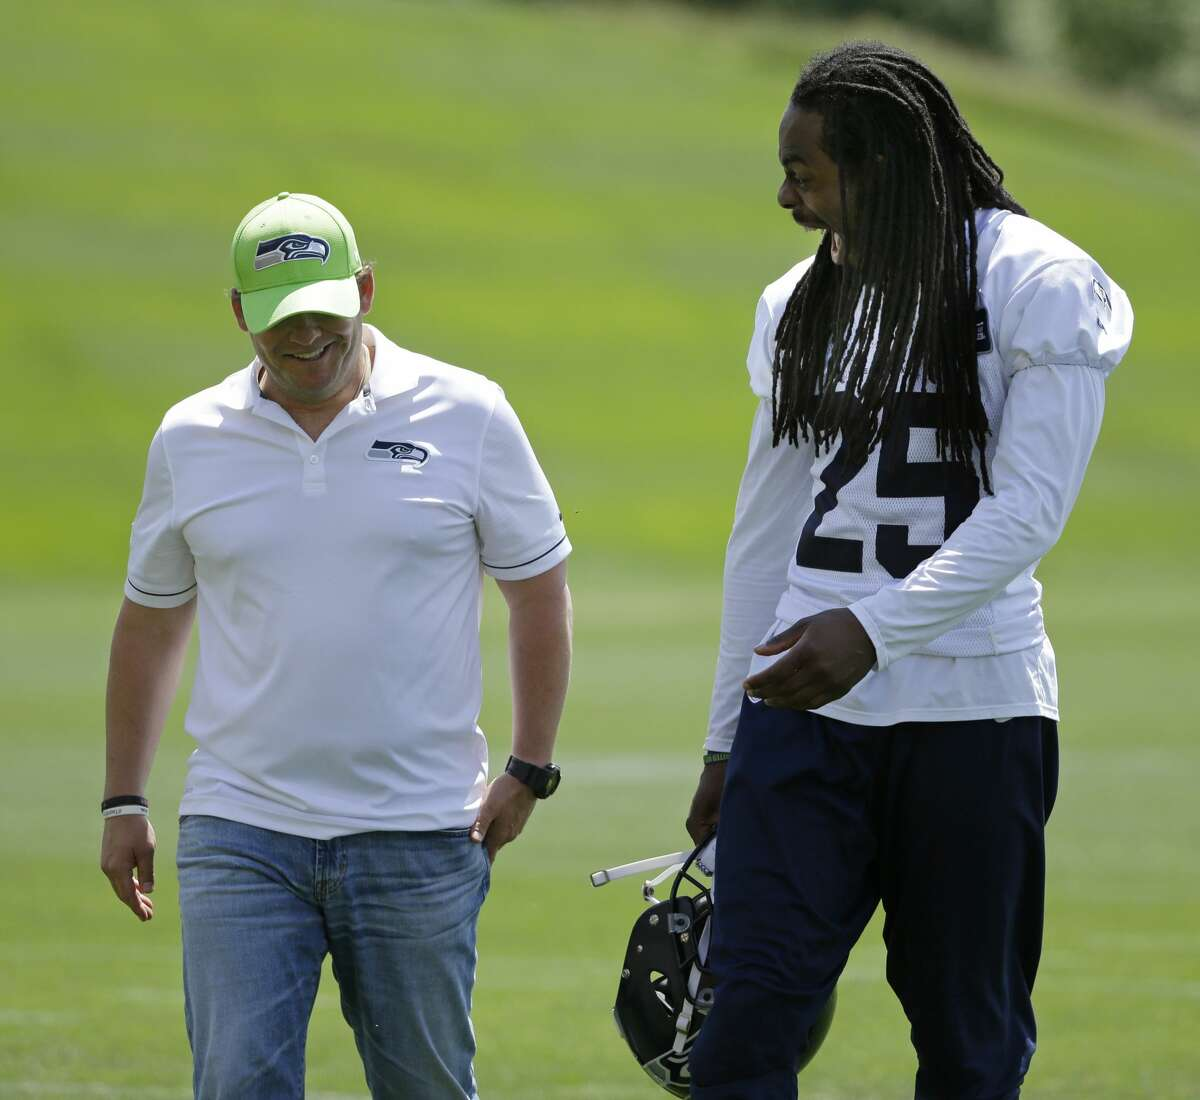 Seattle Seahawks cornerback Richard Sherman, right, laughs as he walks with general manager John Schneider, left, following NFL football practice, Friday, June 2, 2017, in Renton, Wash. (AP Photo/Ted S. Warren)